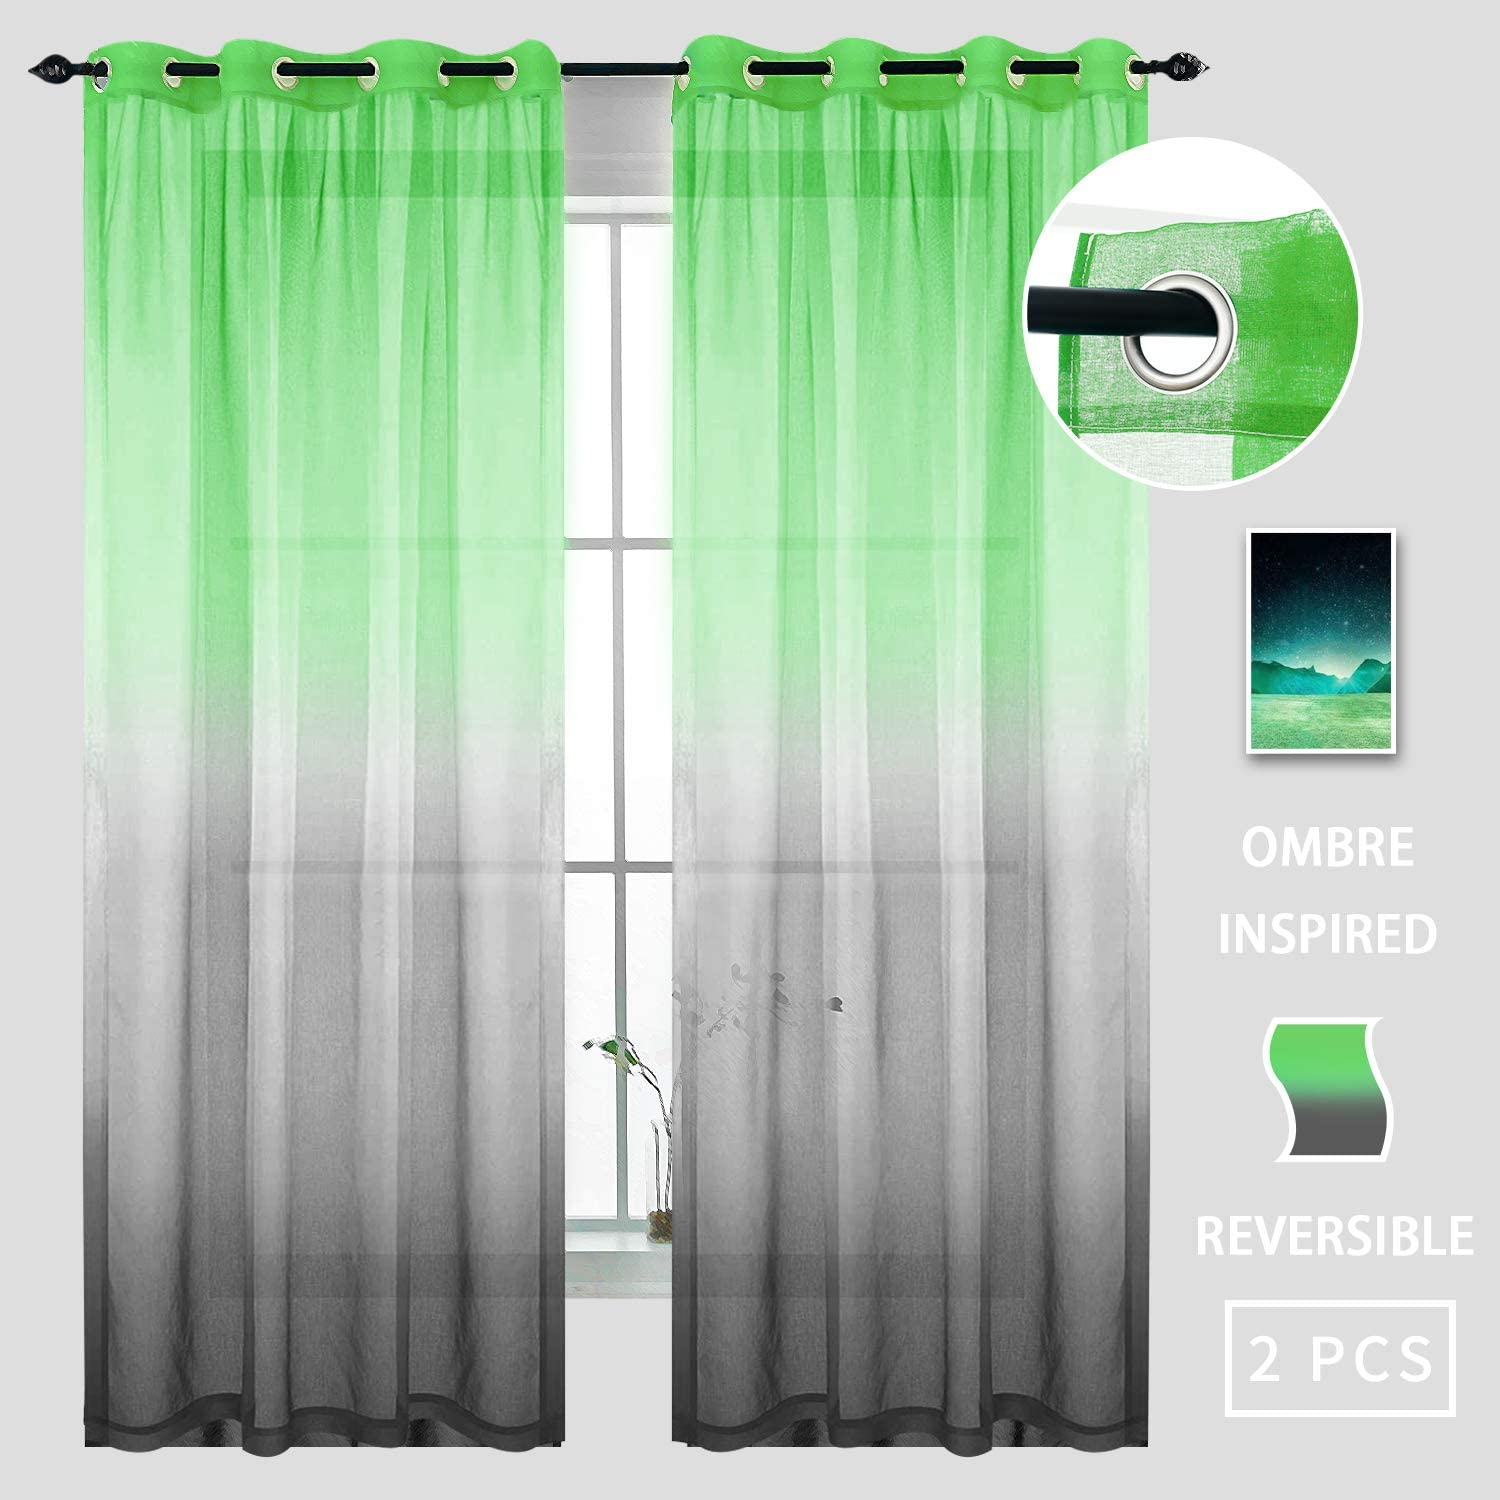 Gradient Curtains Green and Black 63 Inches Long for Bedroom 2 Panels Window Sheer Modern Luxury Stylish Curtains for Backdrop Stage Wedding Party Decoration Dorm Office Living Dining Room 63 inch